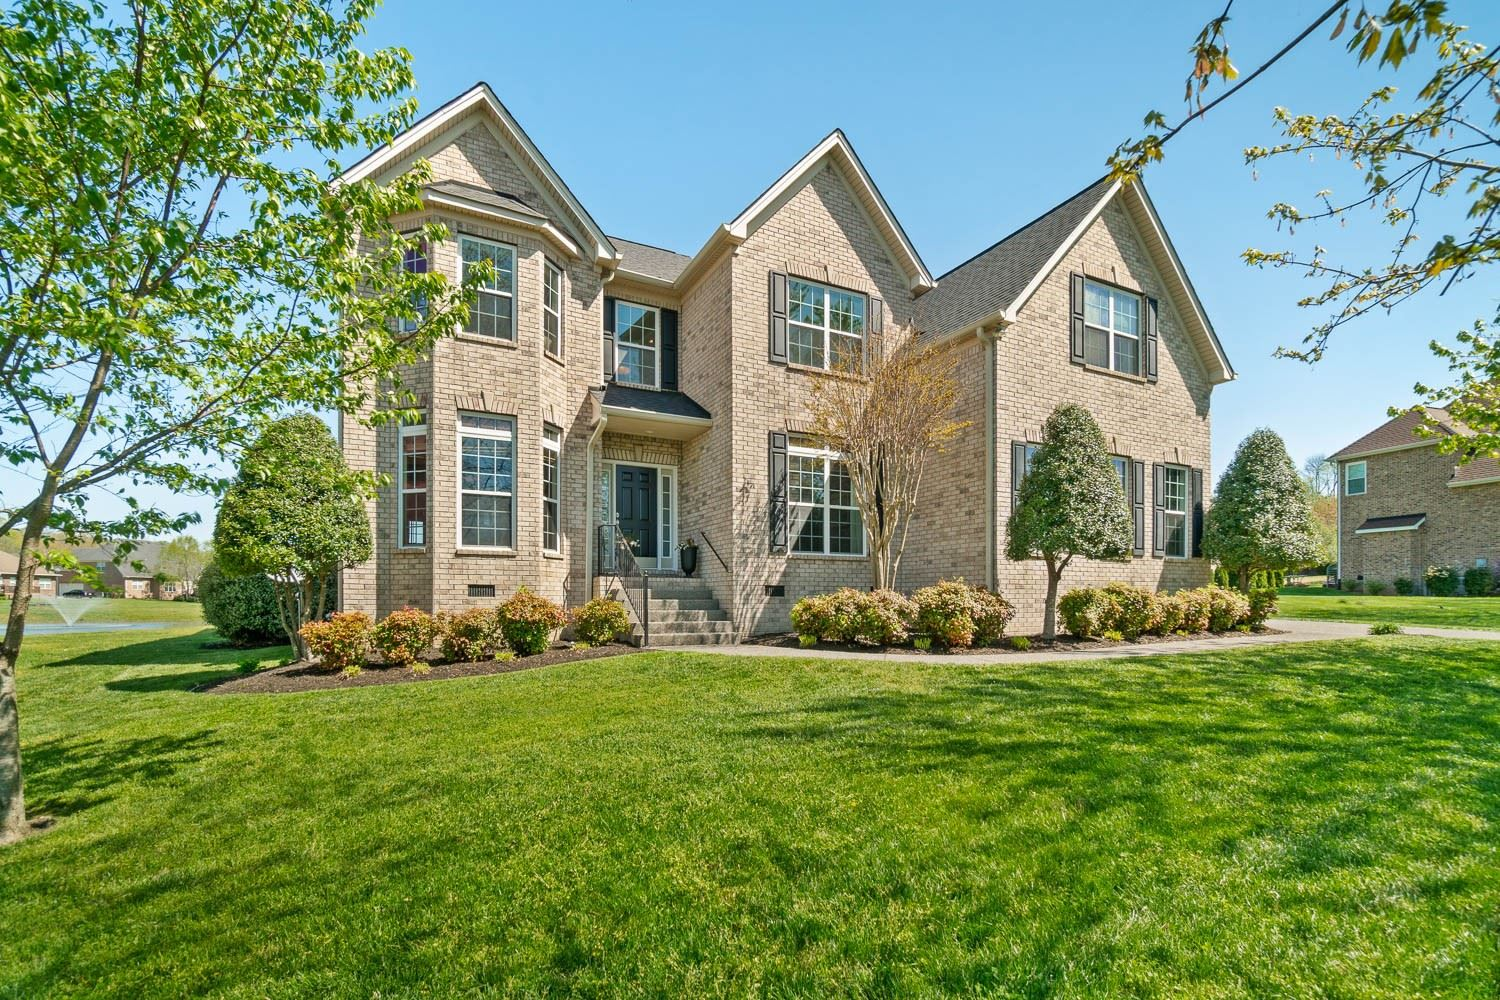 5005 Campbell Station Pkwy, Spring Hill, TN 37174 - MLS#: 2244305